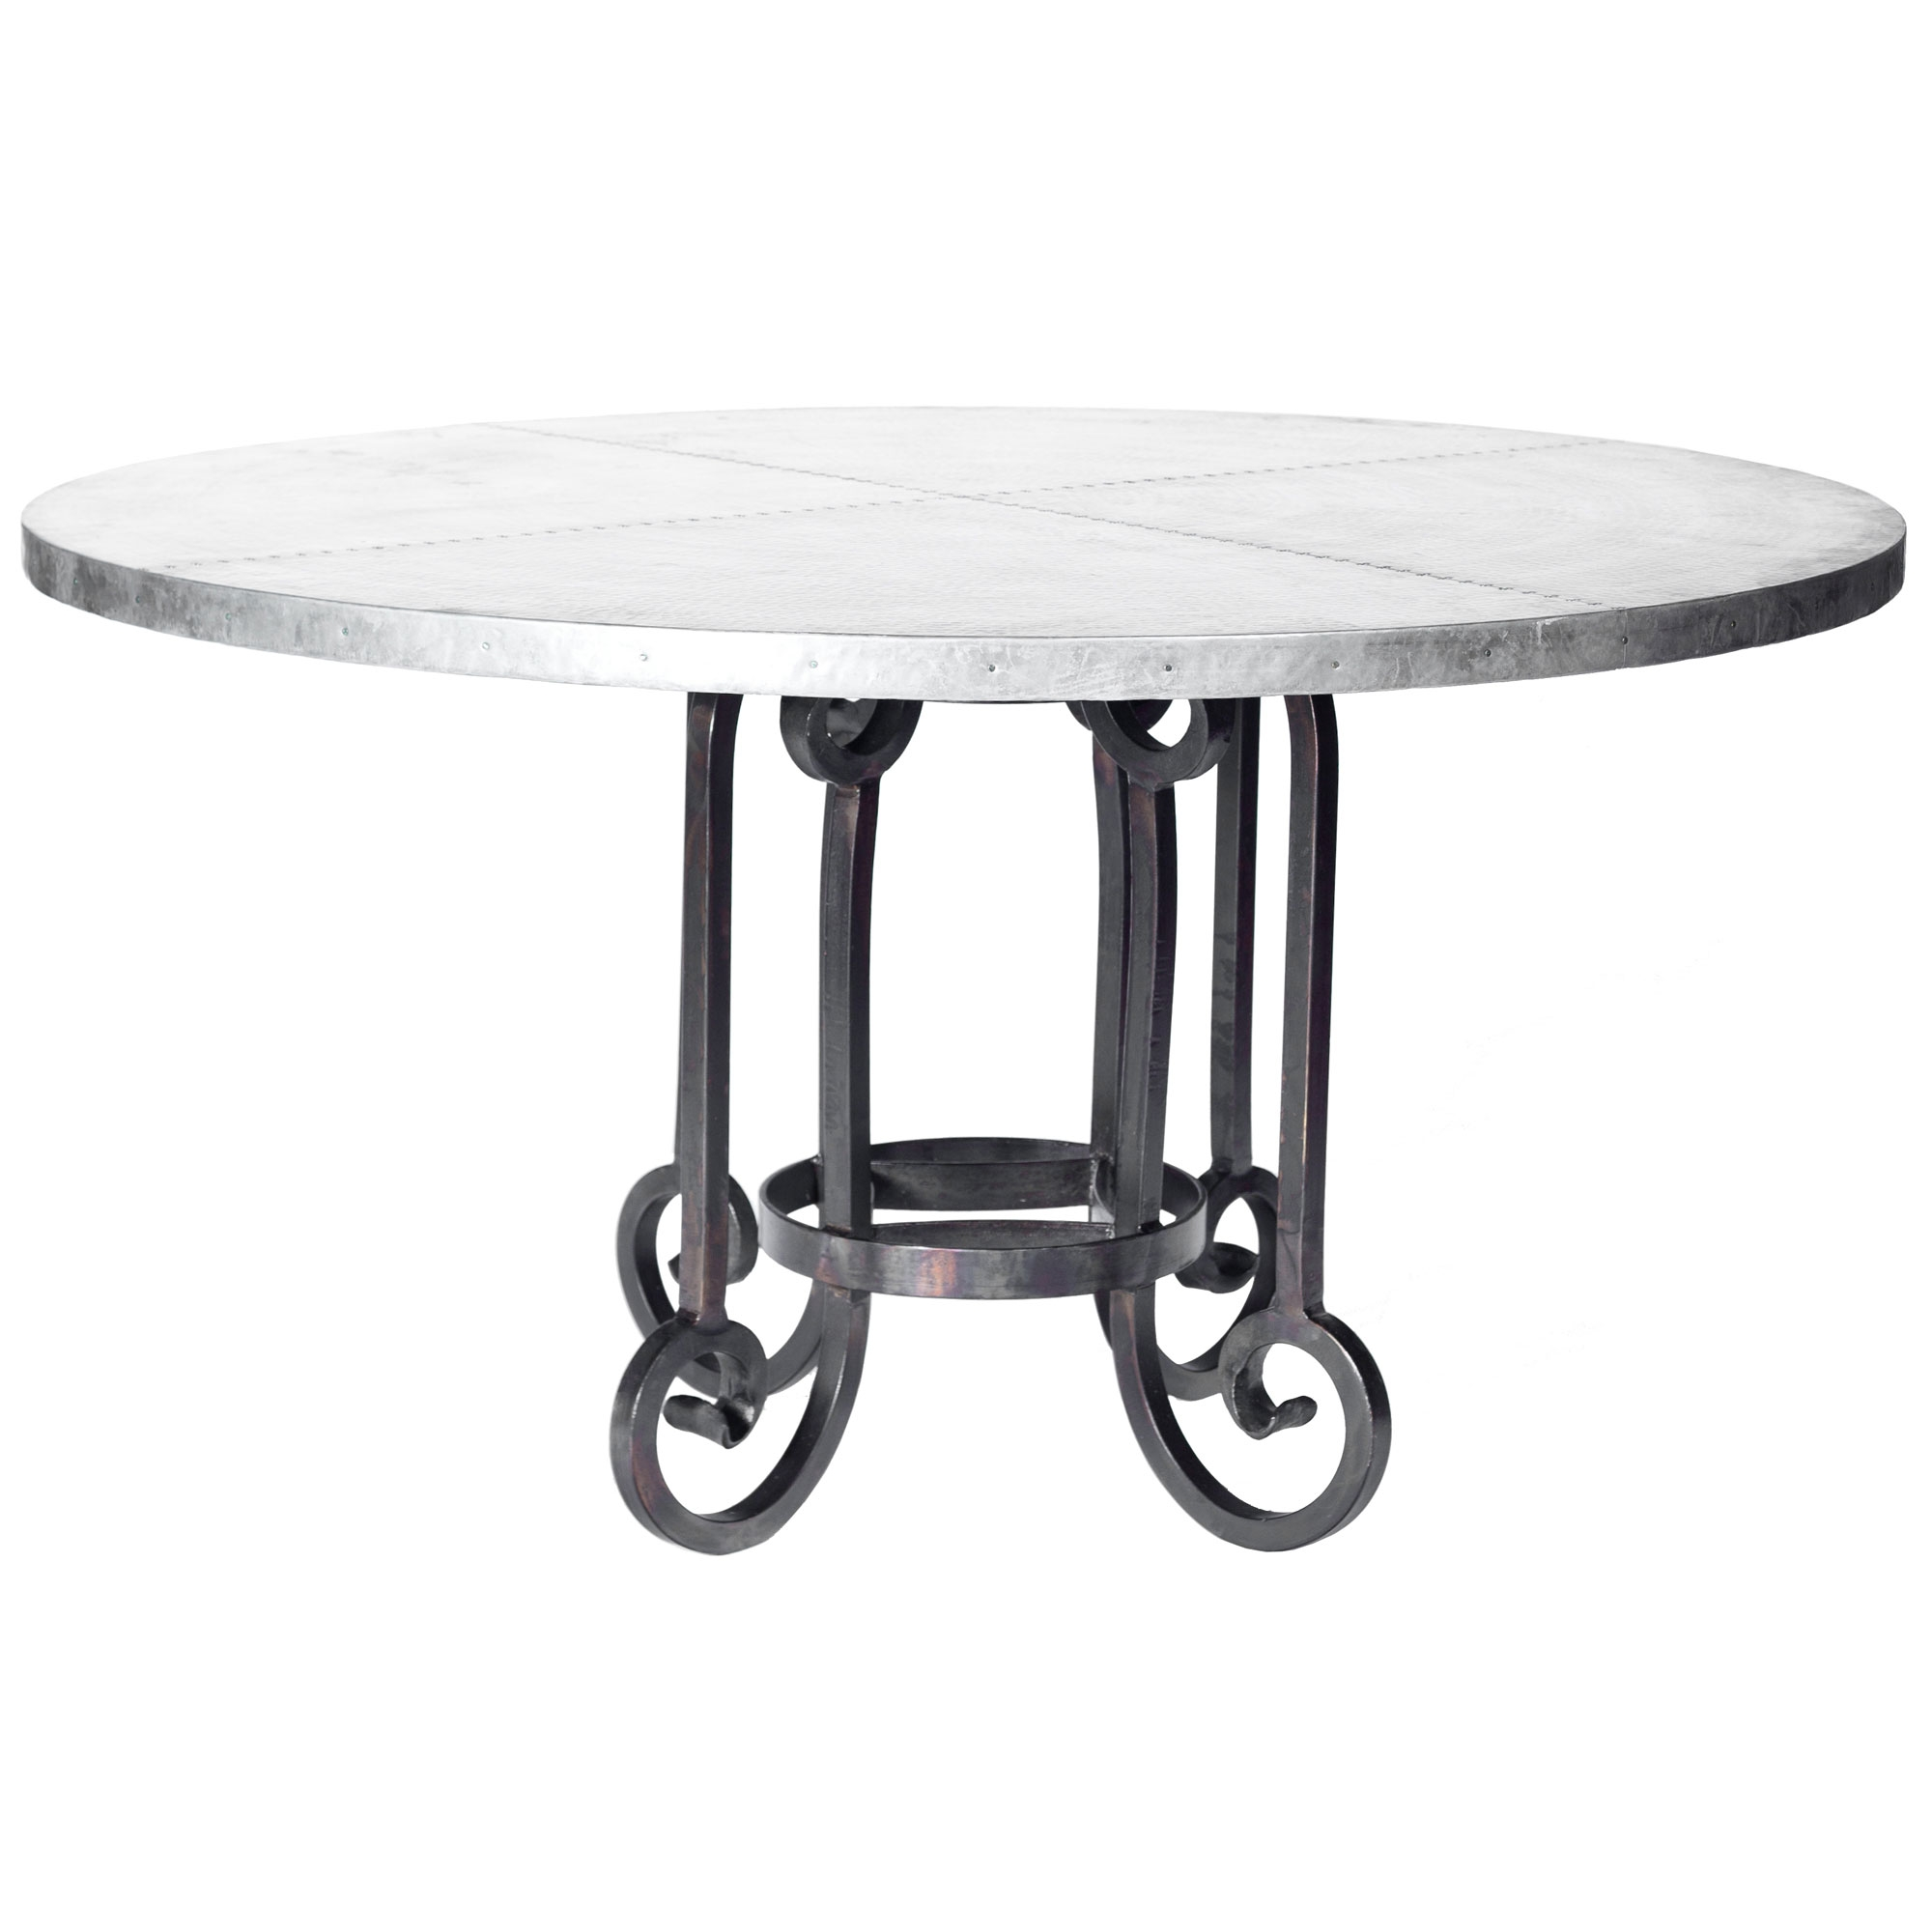 Curled Leg Iron Dining Table With 48 In Hammered Zinc Top